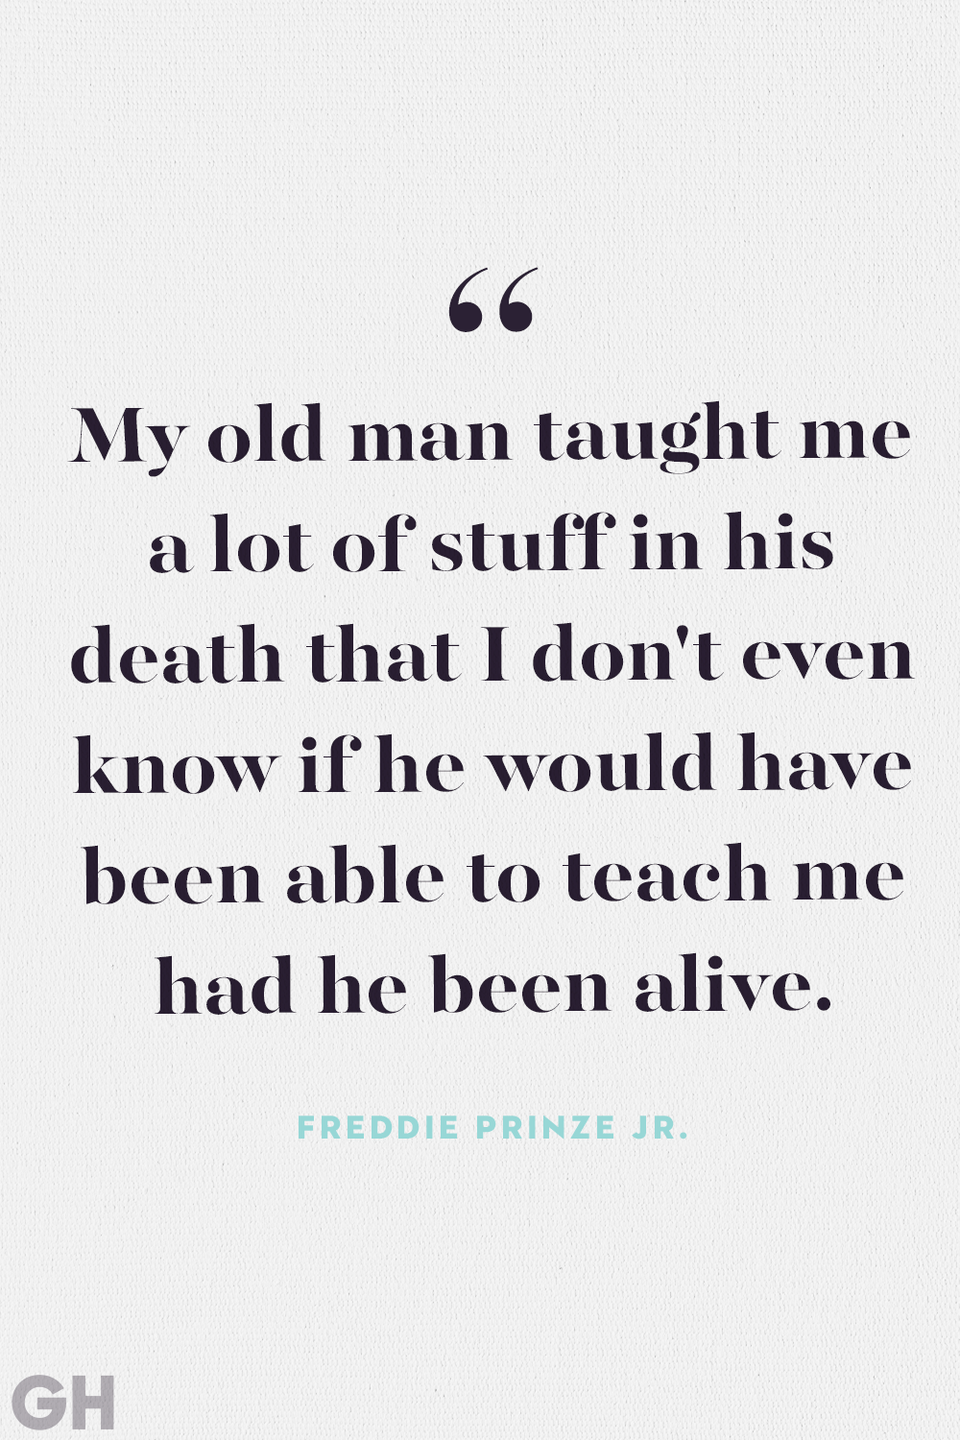 """<p>""""My old man taught me a lot of stuff in his death that I don't even know if he would have been able to teach me had he been alive.""""</p>"""